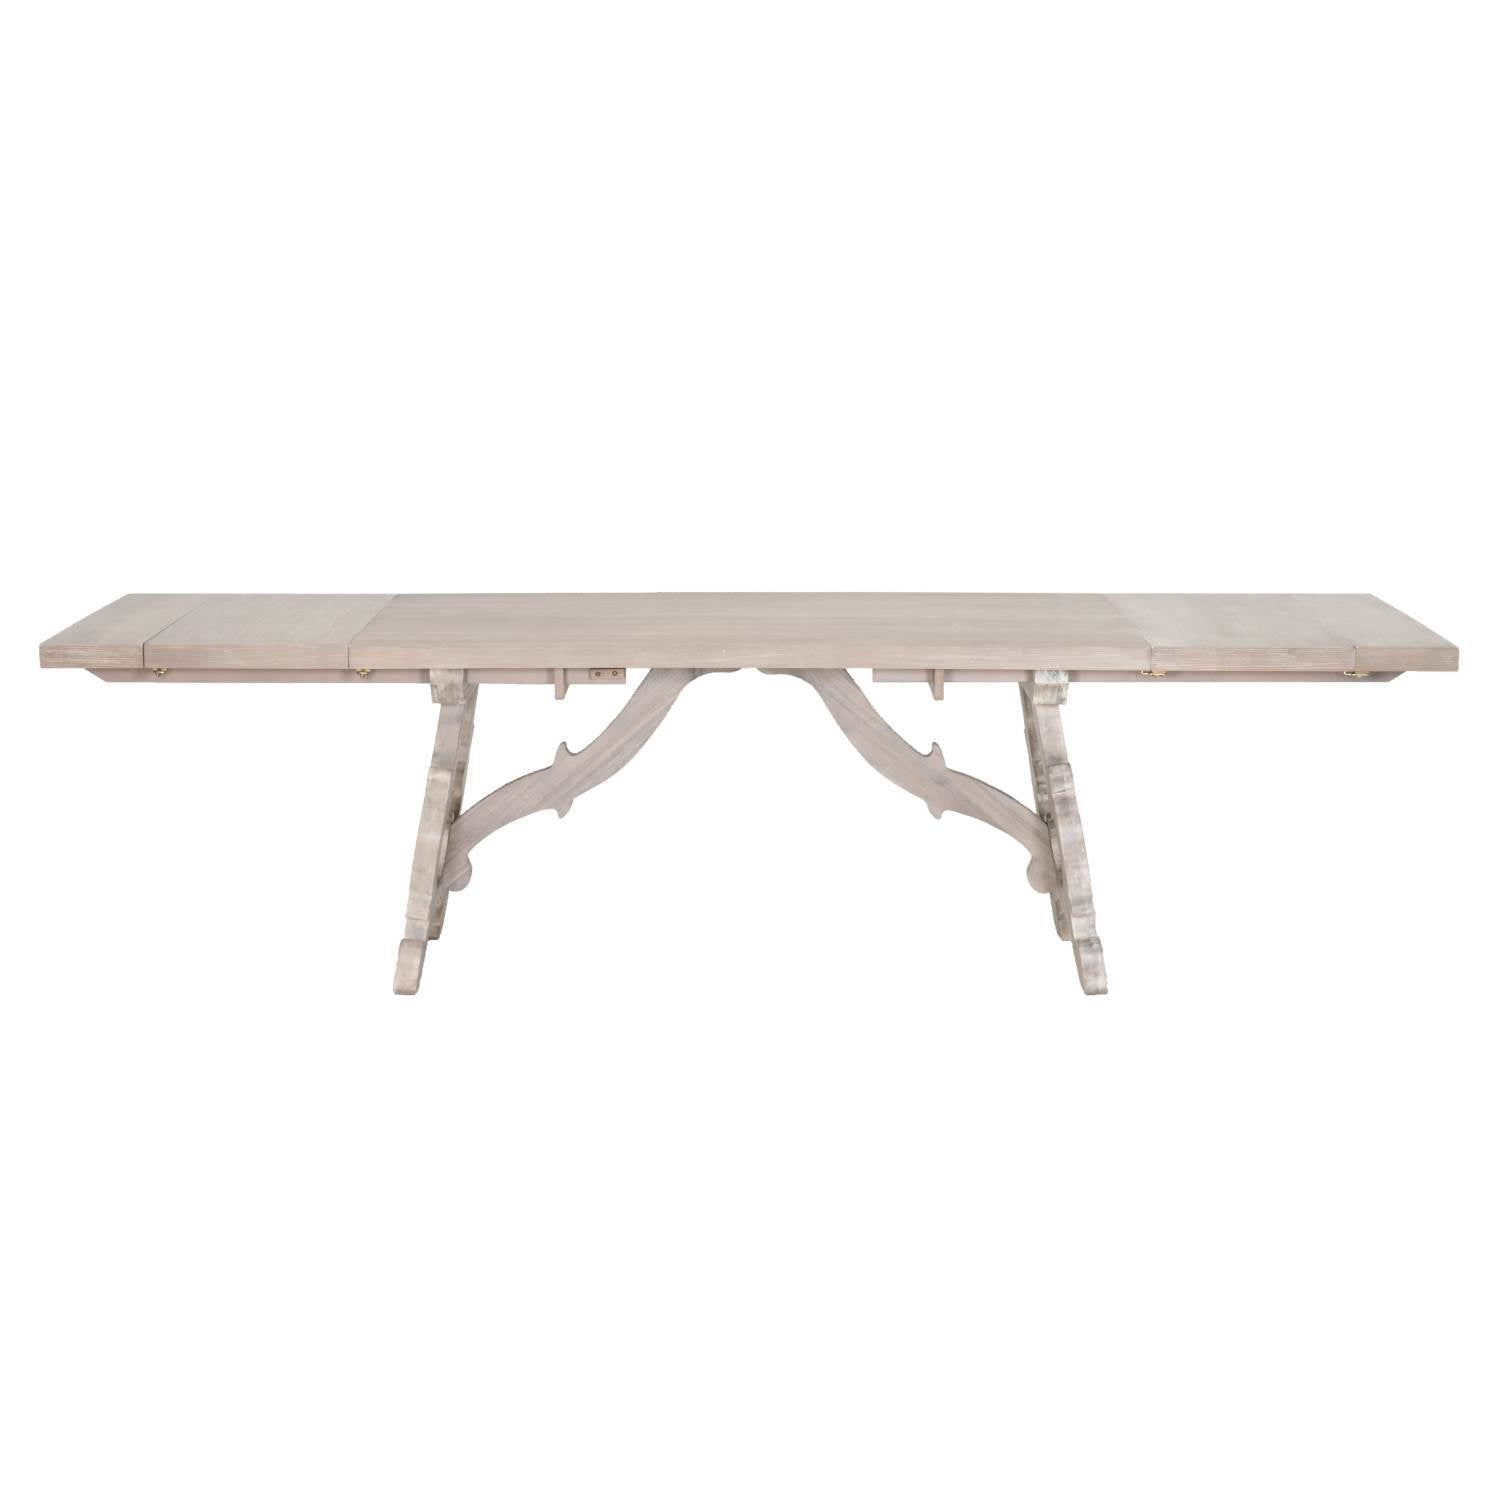 Haute Extension Dining Table in Natural Gray